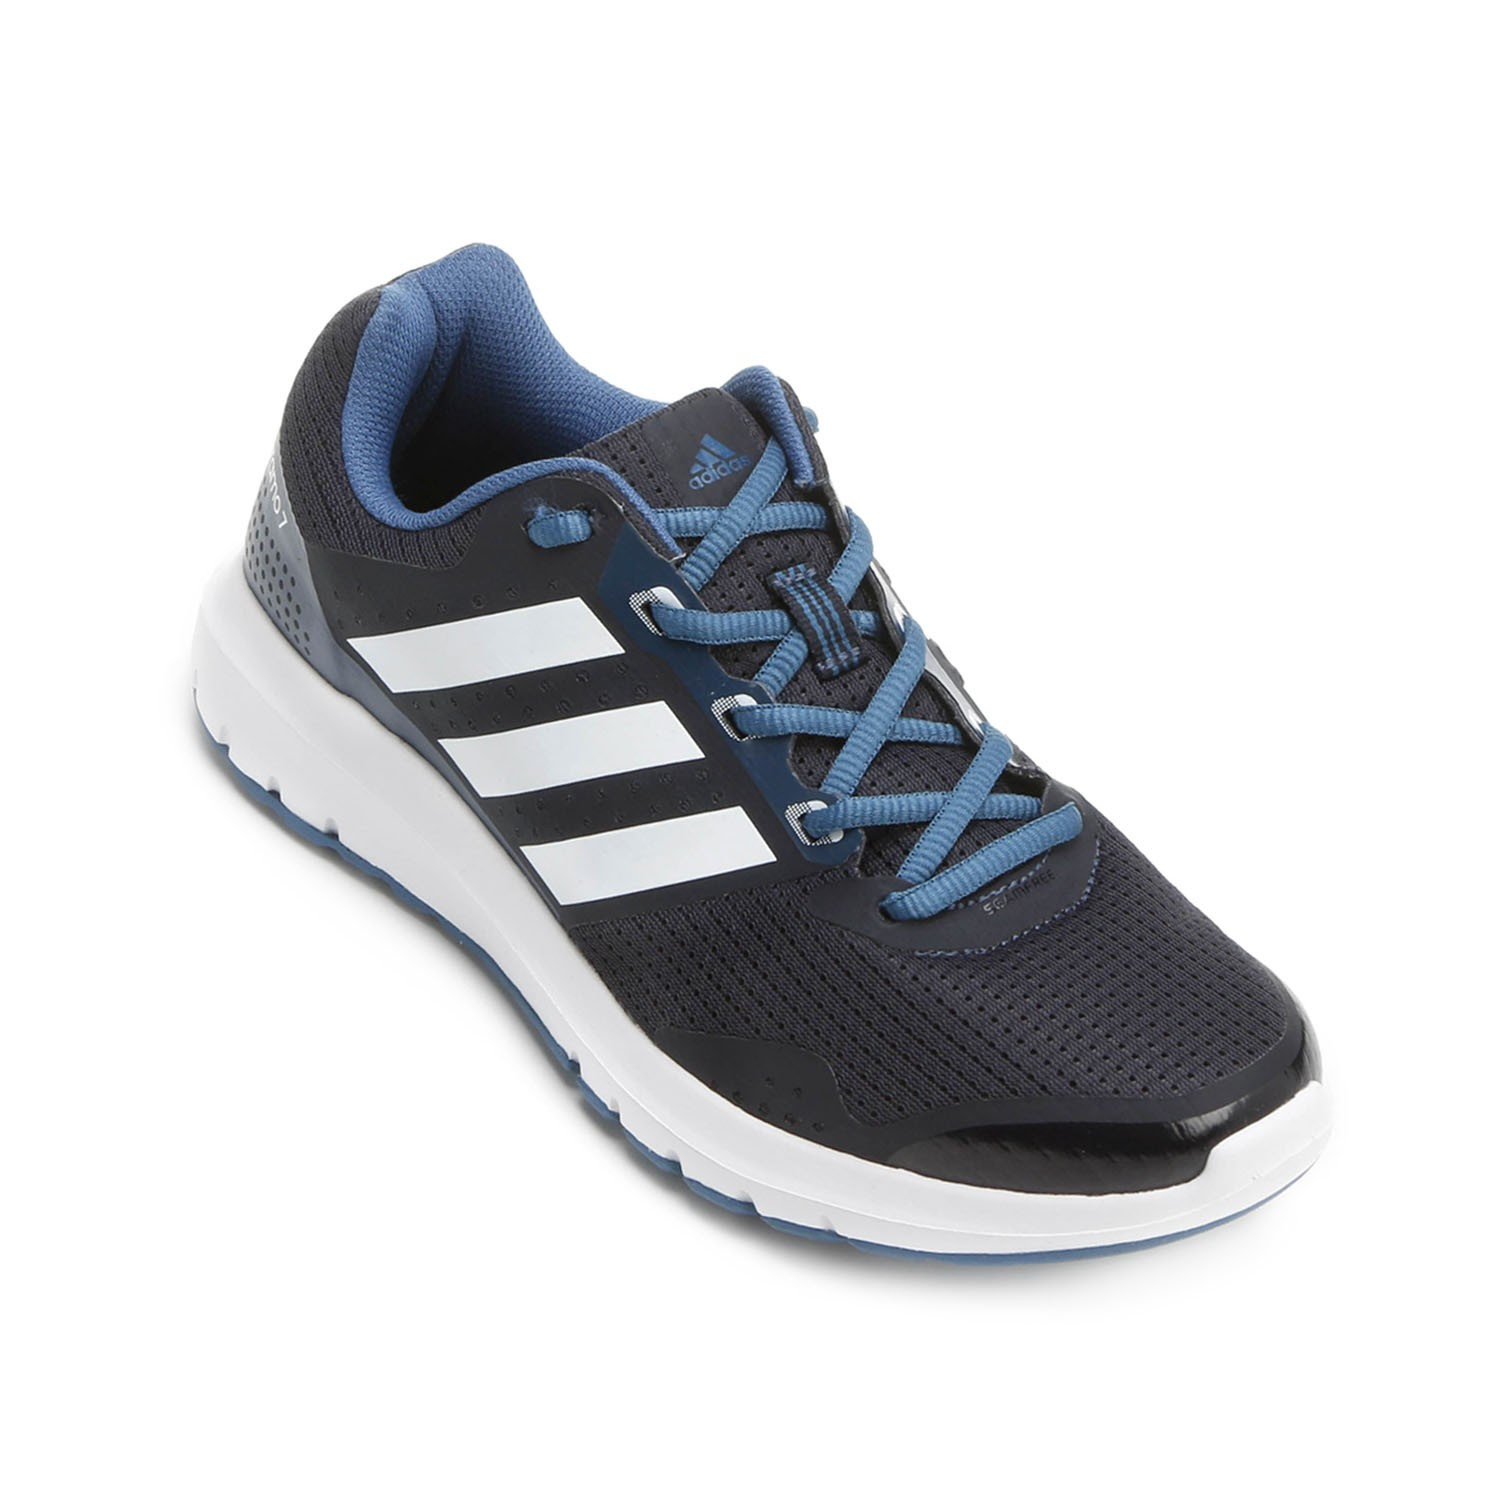 Calcebel TENIS ADIDAS VS ADVANTAGE 49aa3808f4dde